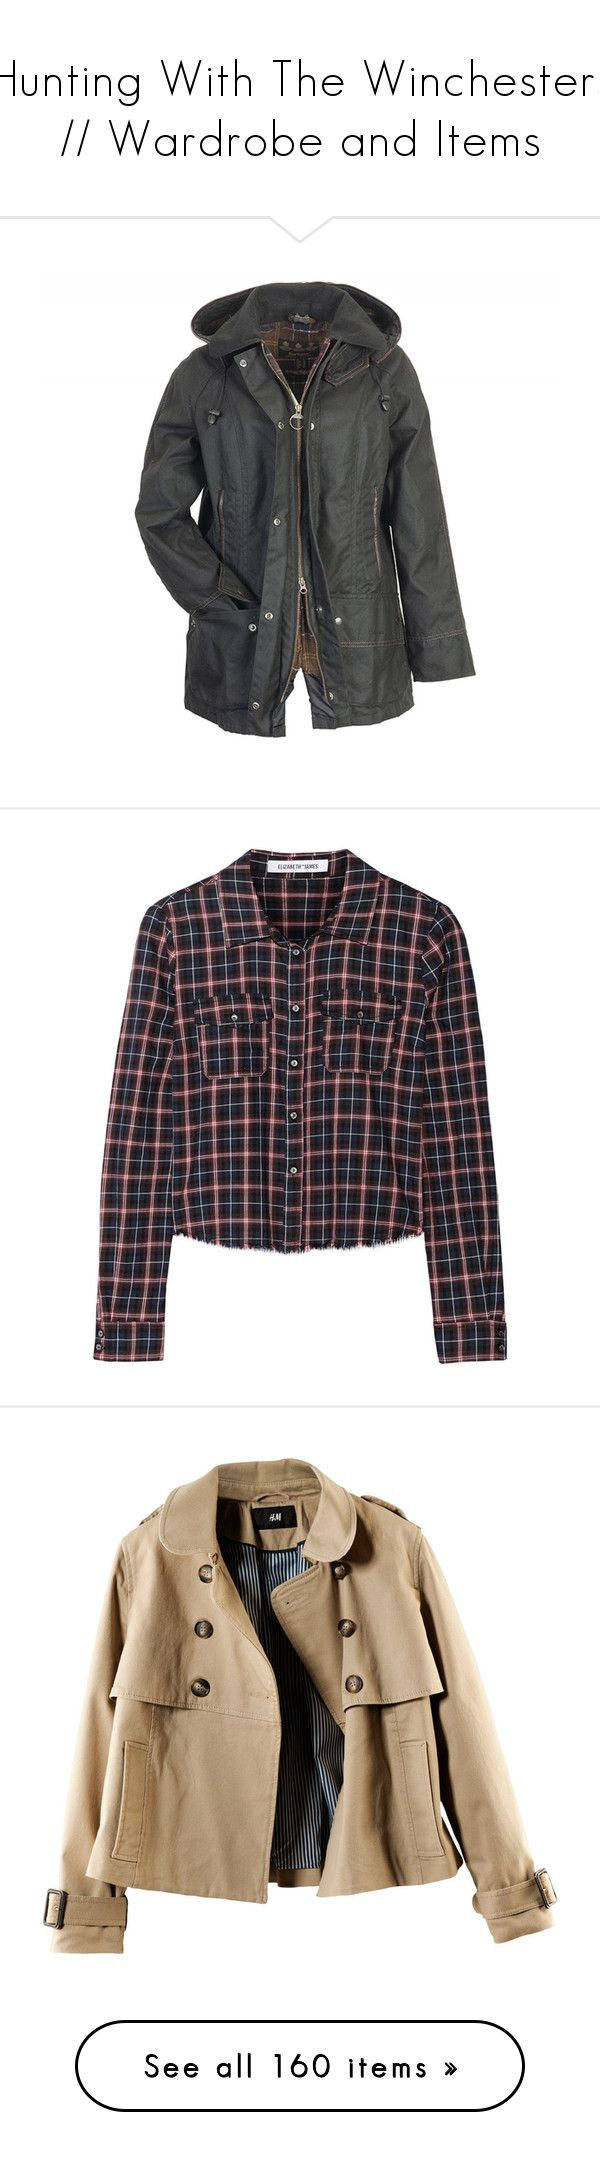 """""""Hunting With The Winchesters // Wardrobe and Items"""" by rosemary52 ❤ liked on Polyvore featuring outerwear, jackets, coats, tops, barbour, hooded jacket, wool jacket, barbour jacket, hooded wool jacket and shirts"""